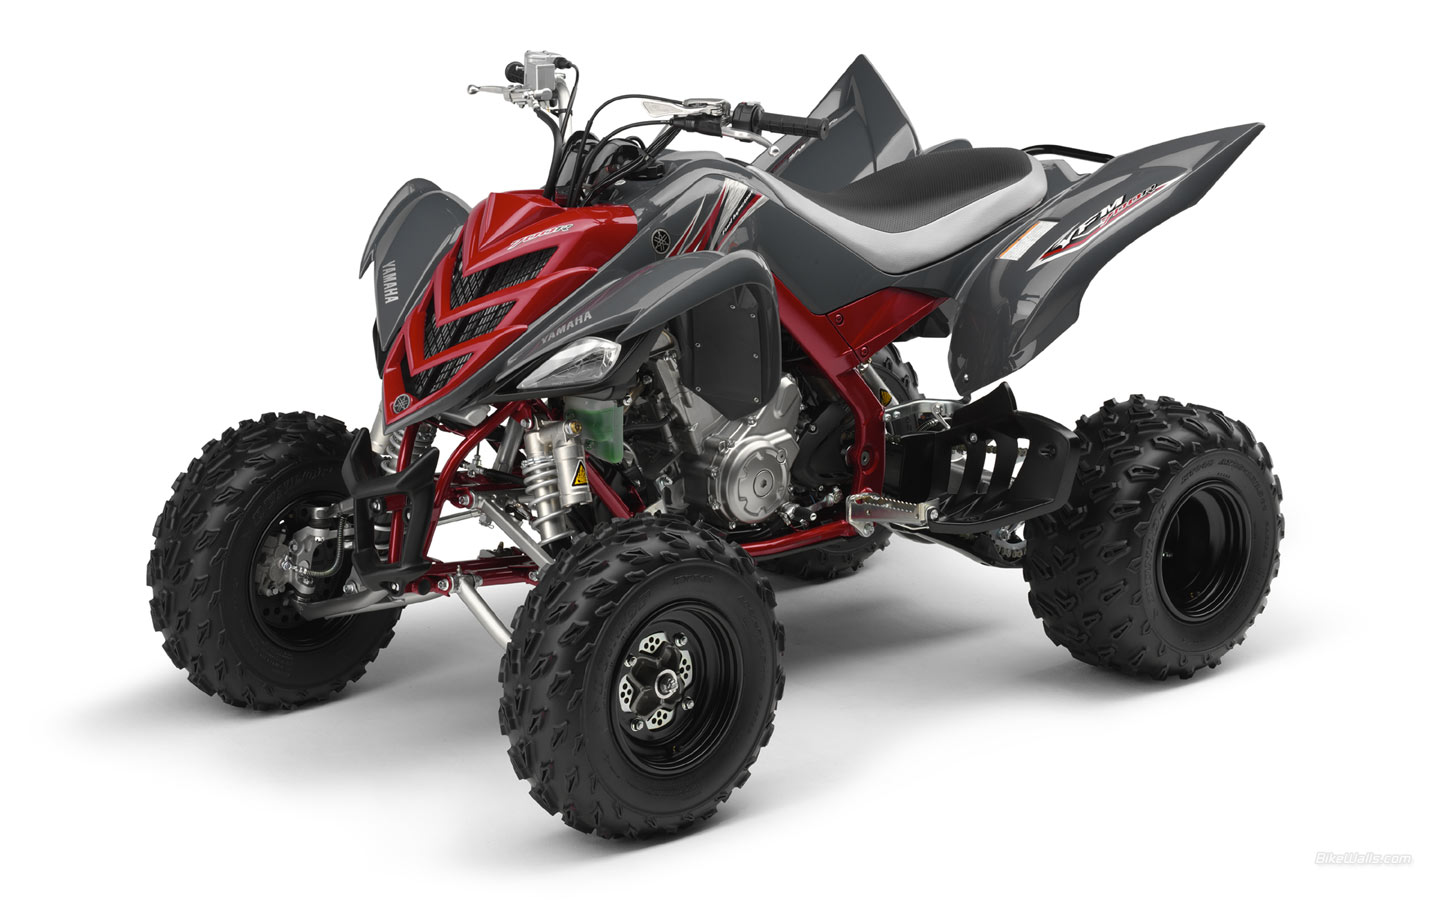 Yamaha Raptor 700R 1440 x 900 wallpaper 1440x900